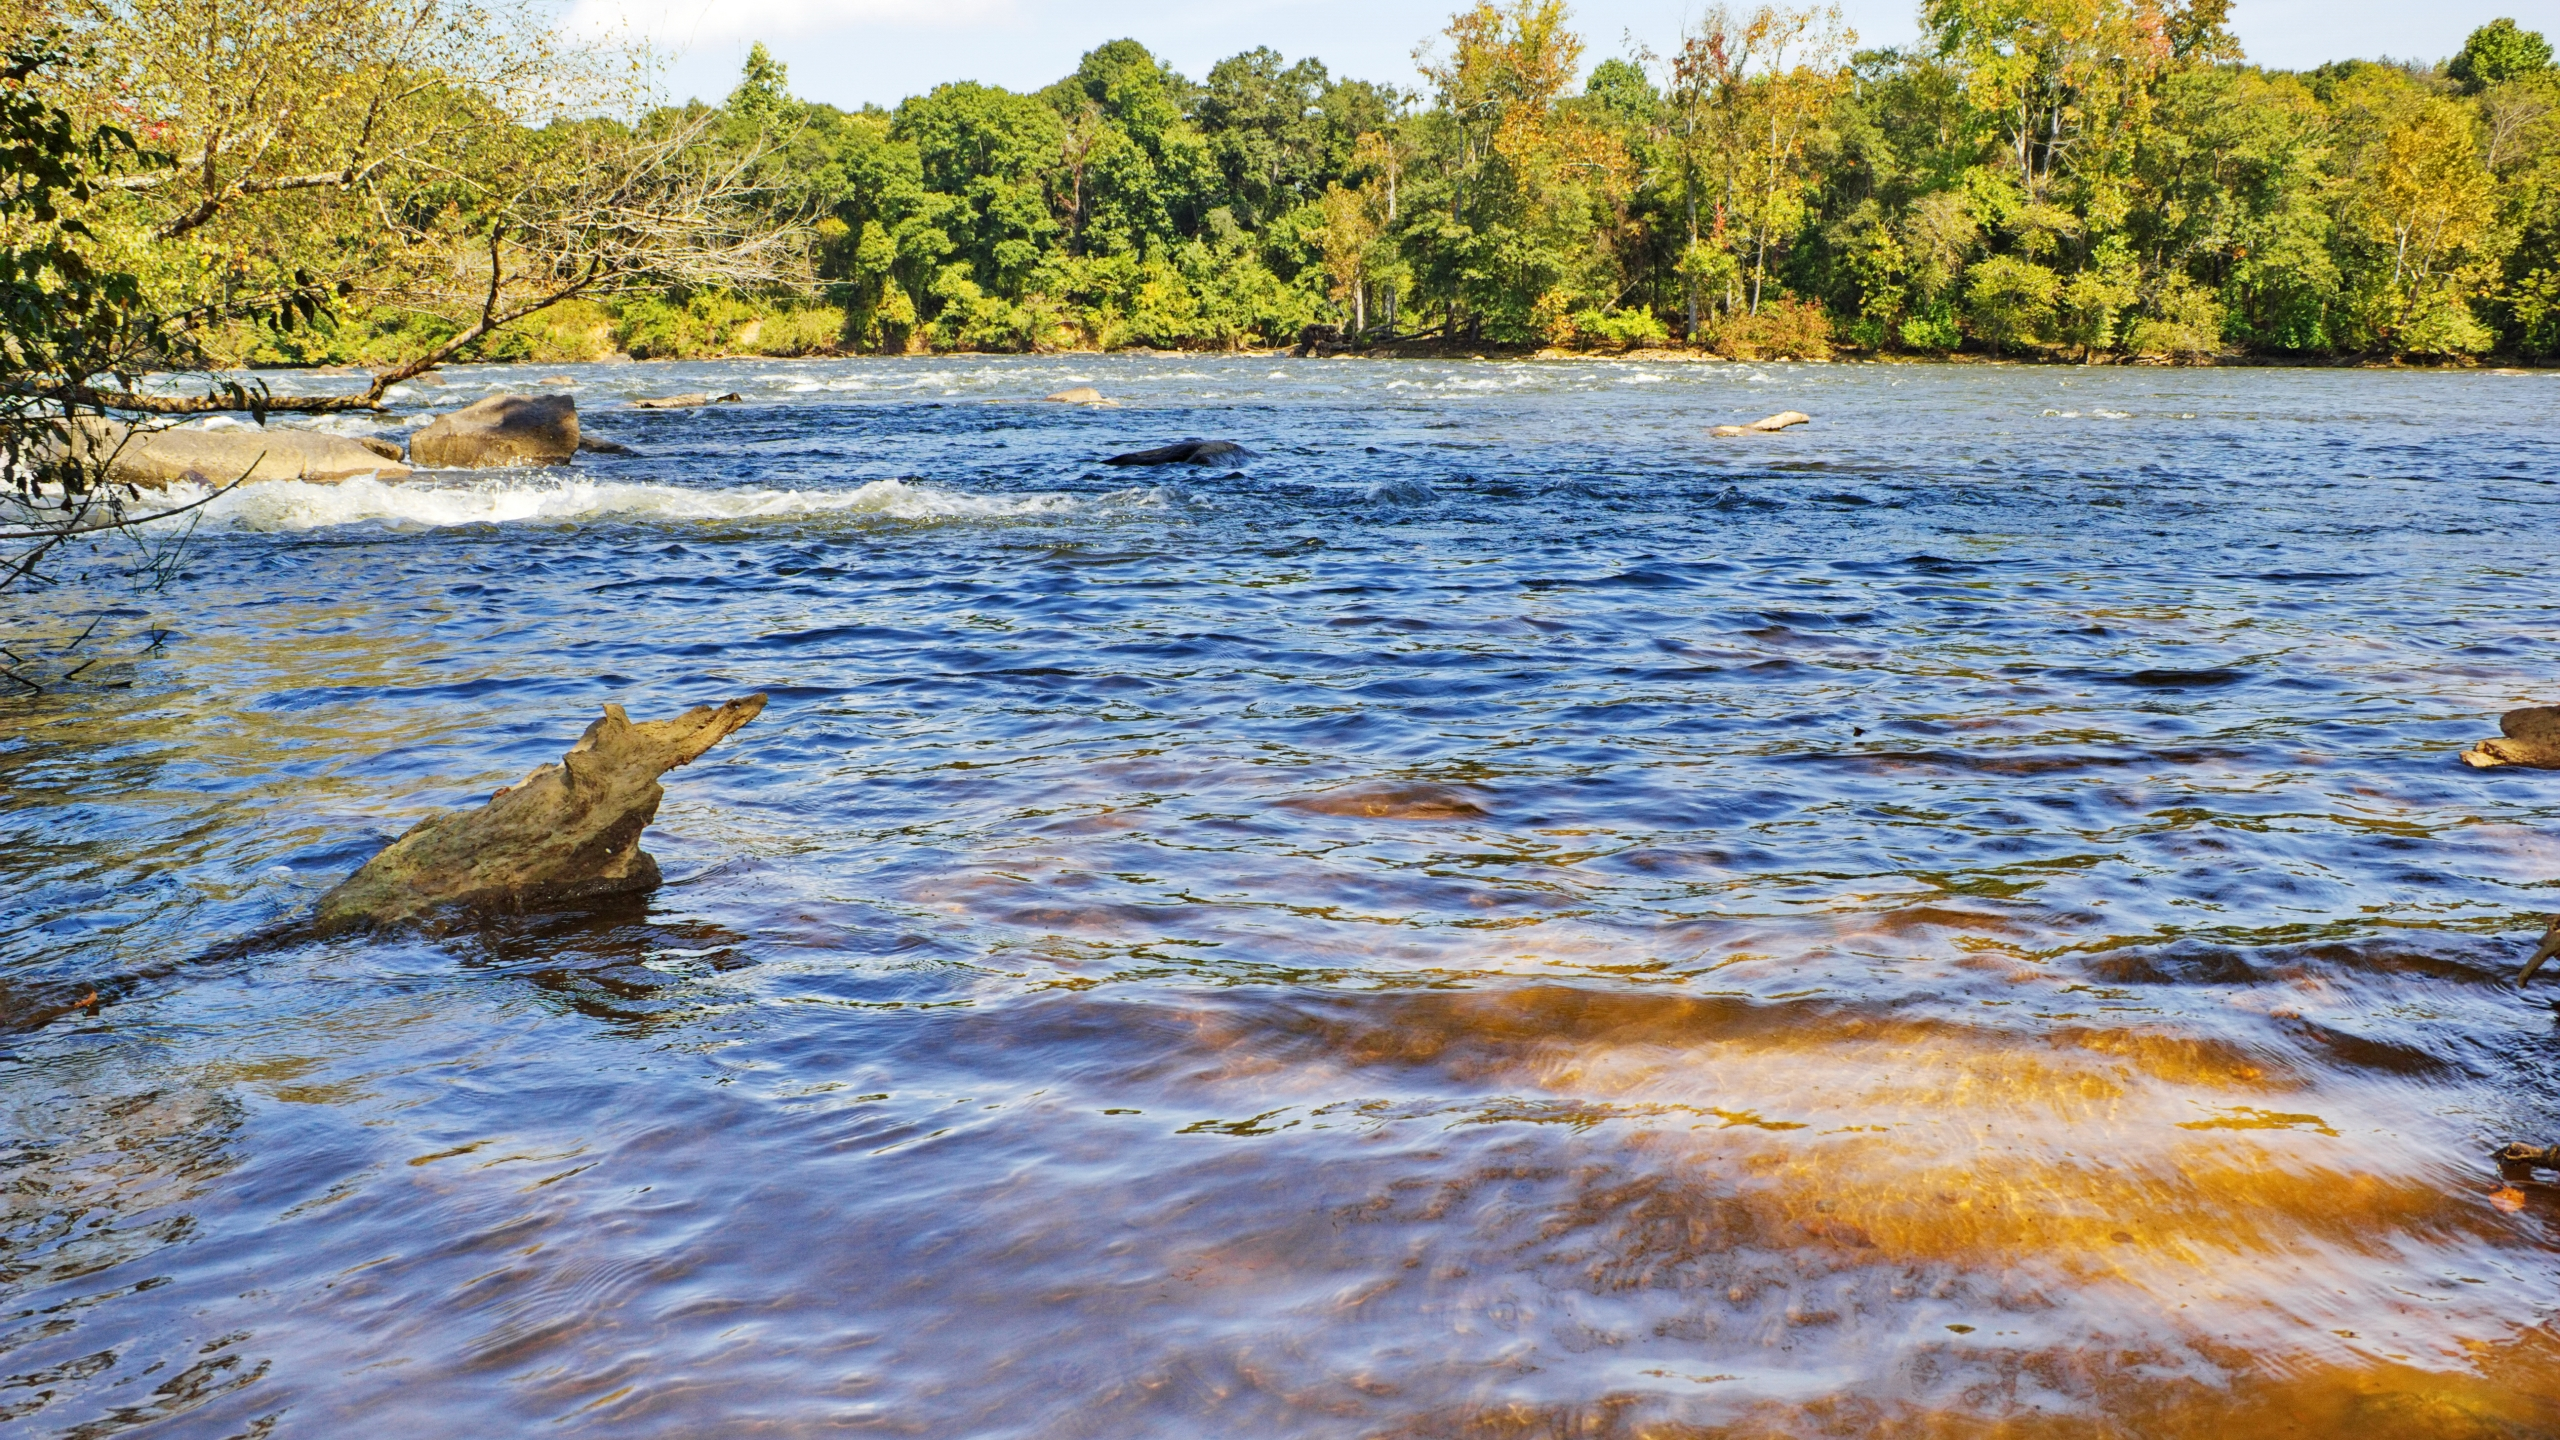 The Catawba River in Rock Hill, South Carolina (Stock image/Getty)